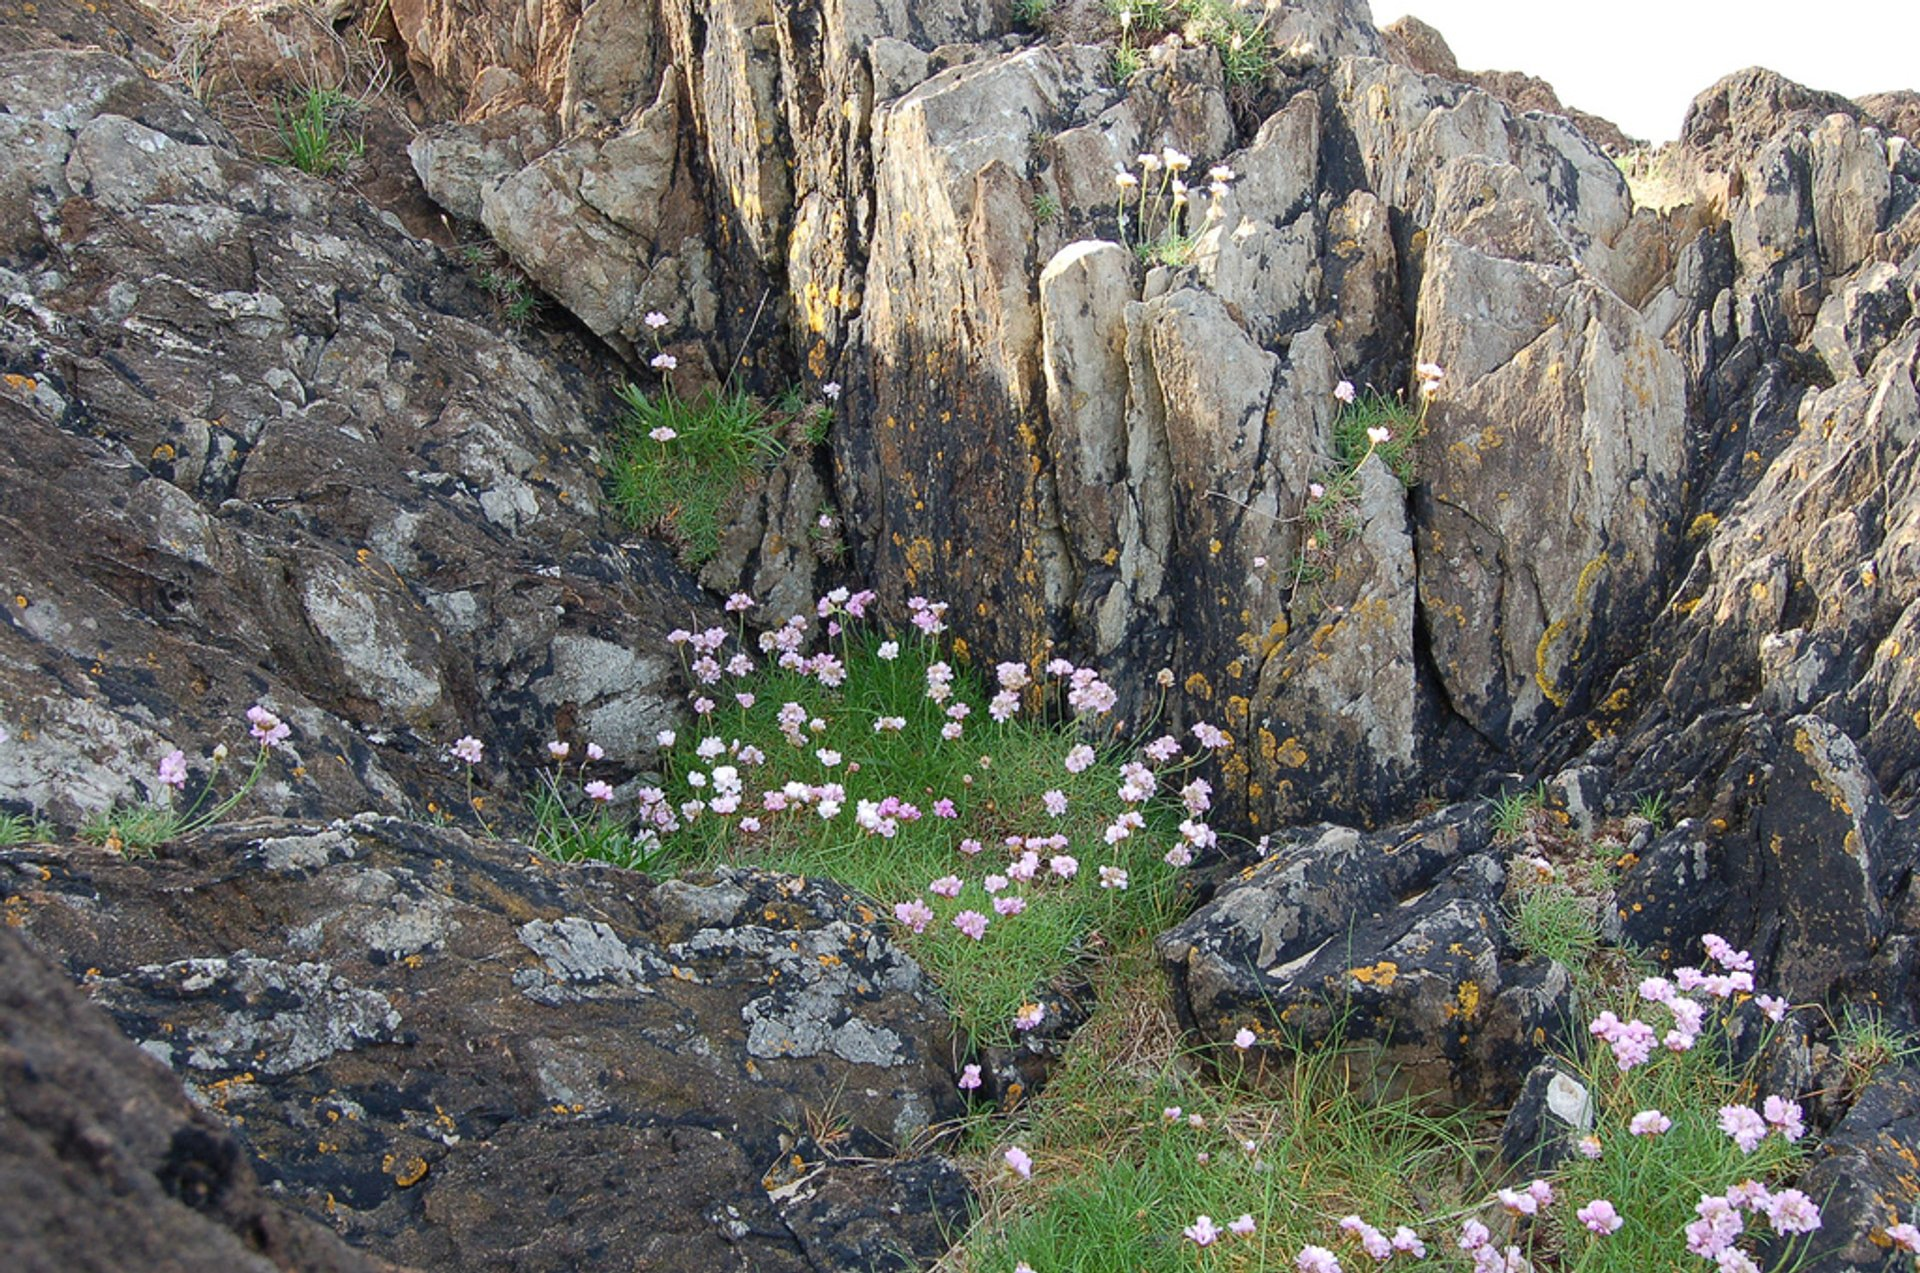 Sea Pinks Blooming Season in Ireland - Best Season 2019